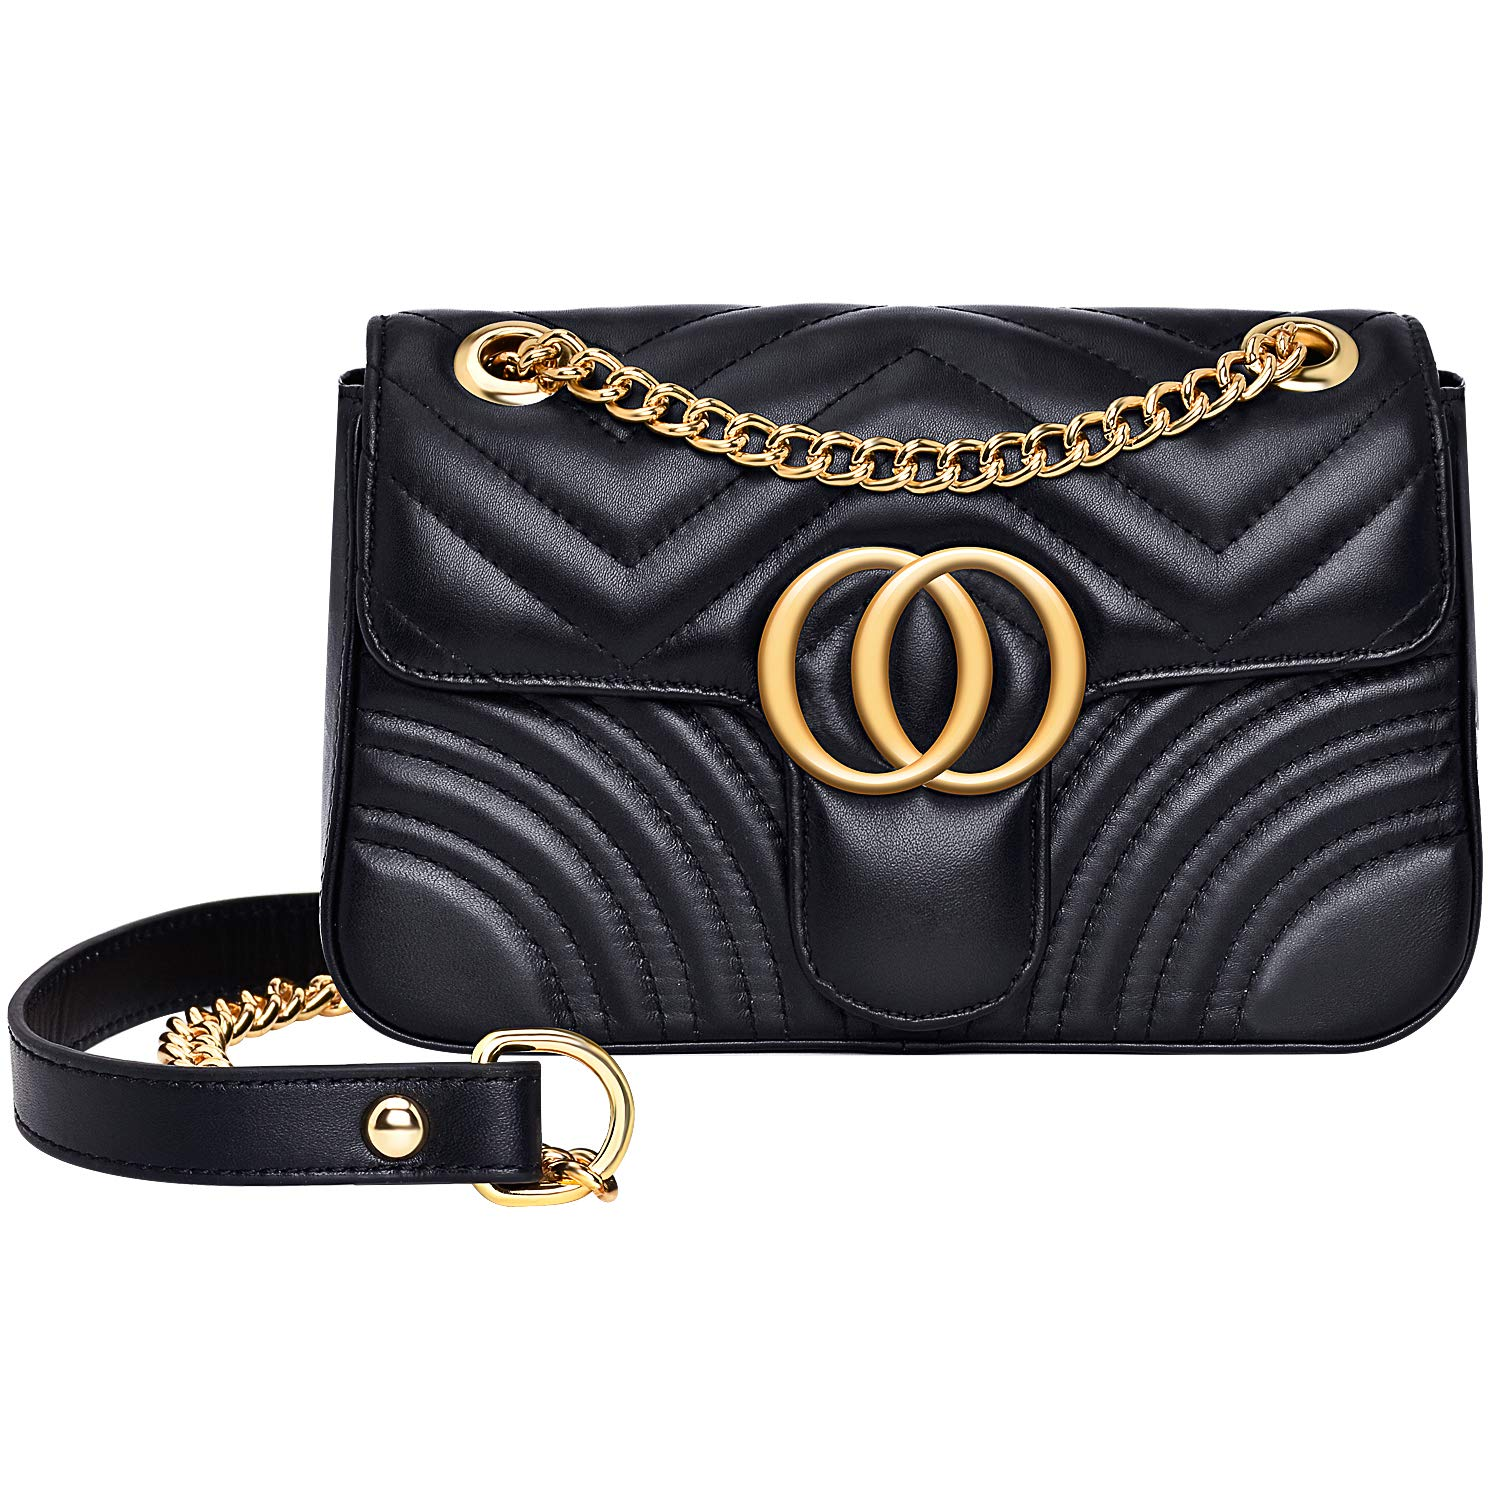 9fe38806eb6 Women Fashion Shoulder Bag Jelly Clutch Handbag Quilted Crossbody Bag with  Chain. text_price_history_block_title.  button_price_history_block_notification